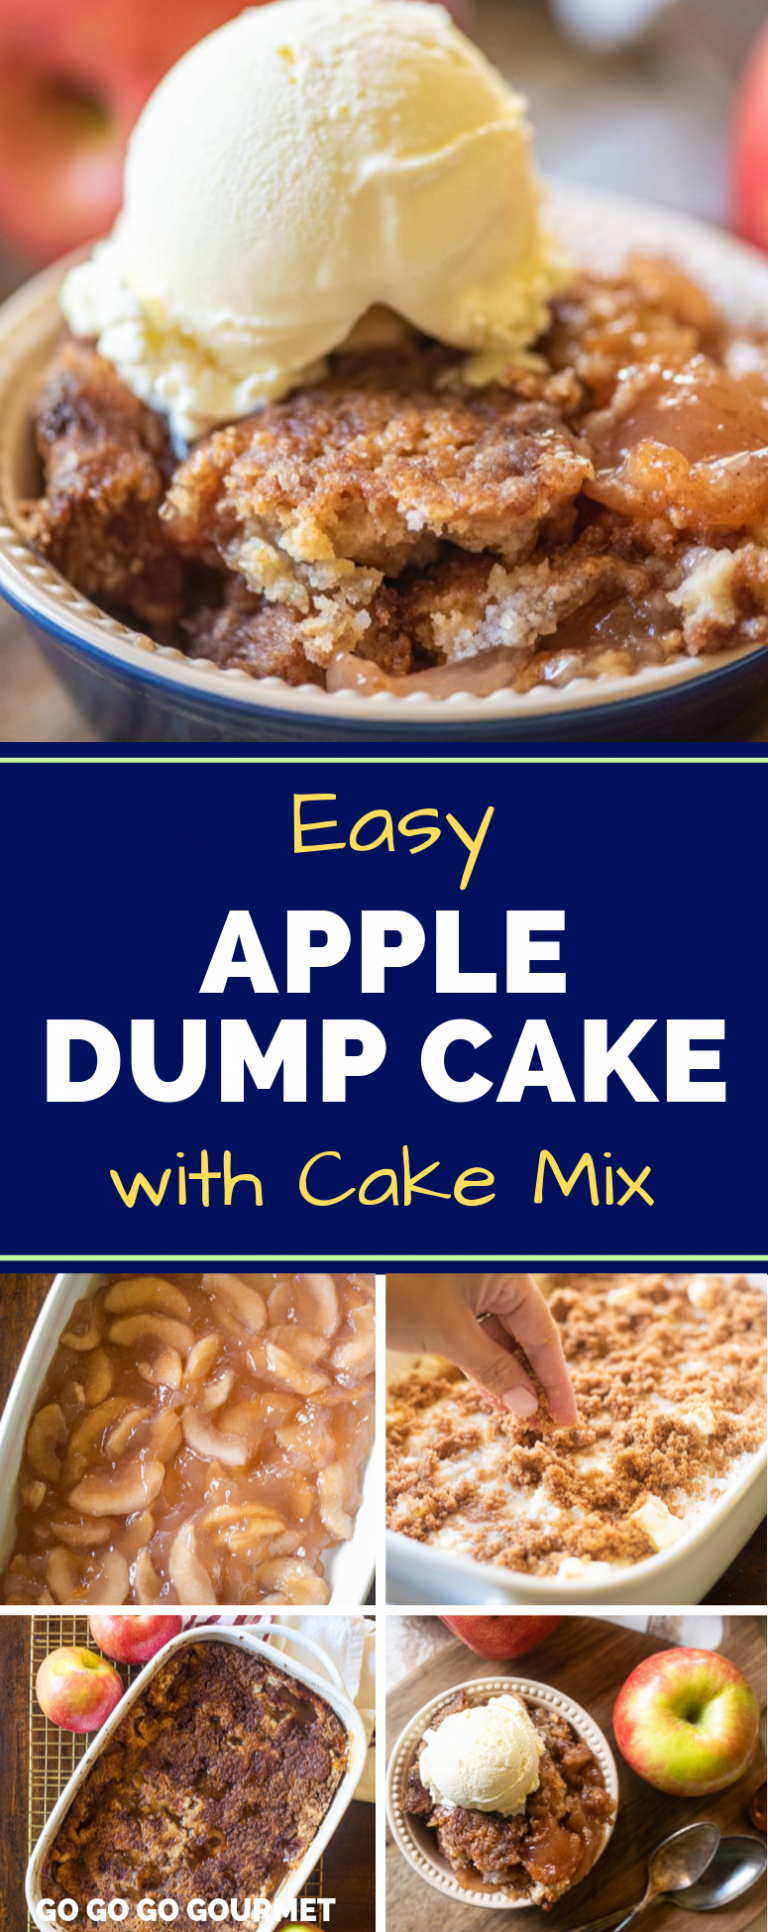 This easy, 3 ingredient Apple Dump cake will easily be one of your favorite fall desserts! It's made easy with pie filling and a box cake mix, which means less work for you! With lot's of cinnamon flavor, you are going to fall in love! #gogogogourmet #appledumpcake #dumpcakerecipes #falldesserts #easycakerecipes via @gogogogourmet